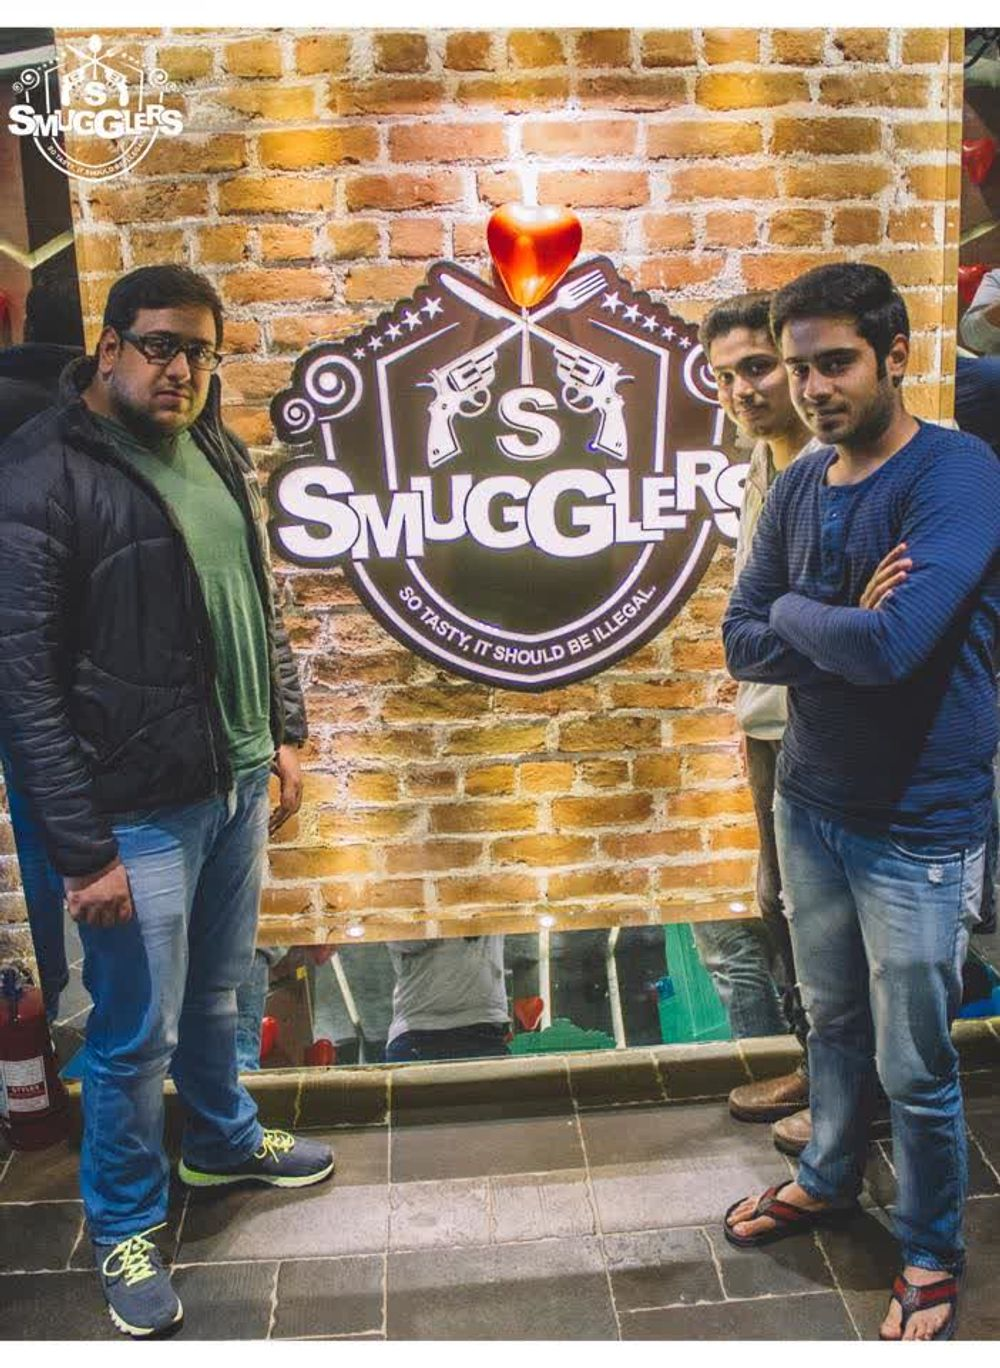 title: SMUGGLERS